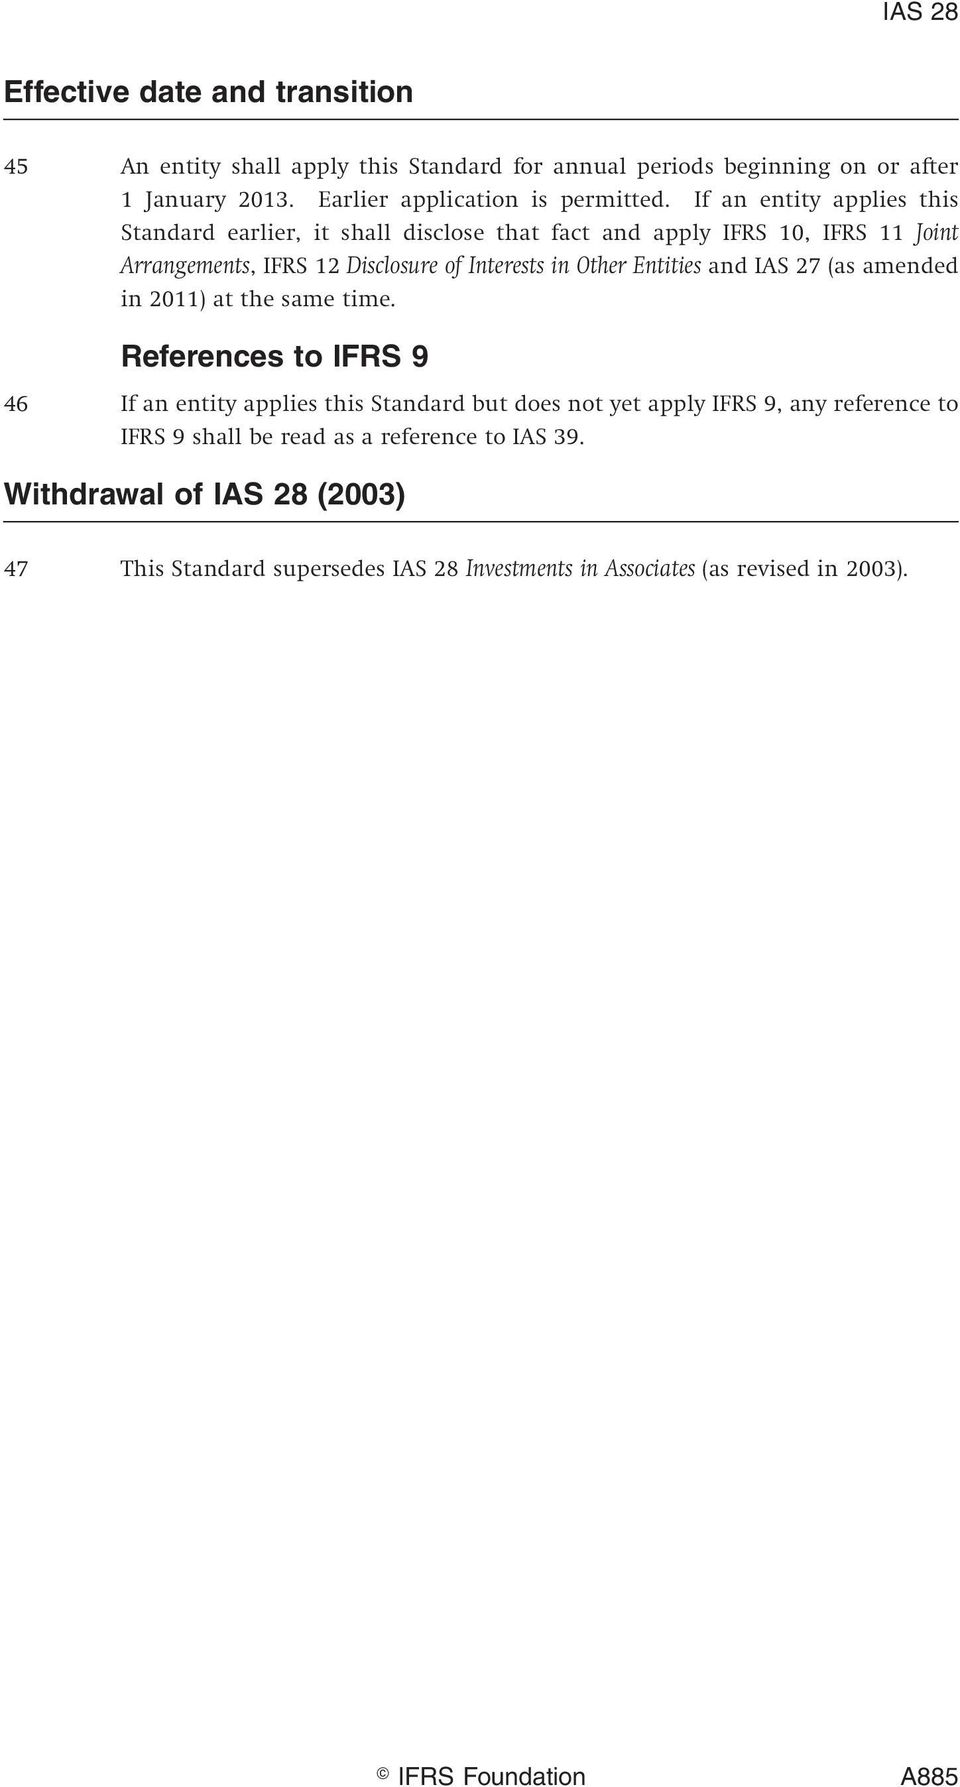 Entities and IAS 27 (as amended in 2011) at the same time.